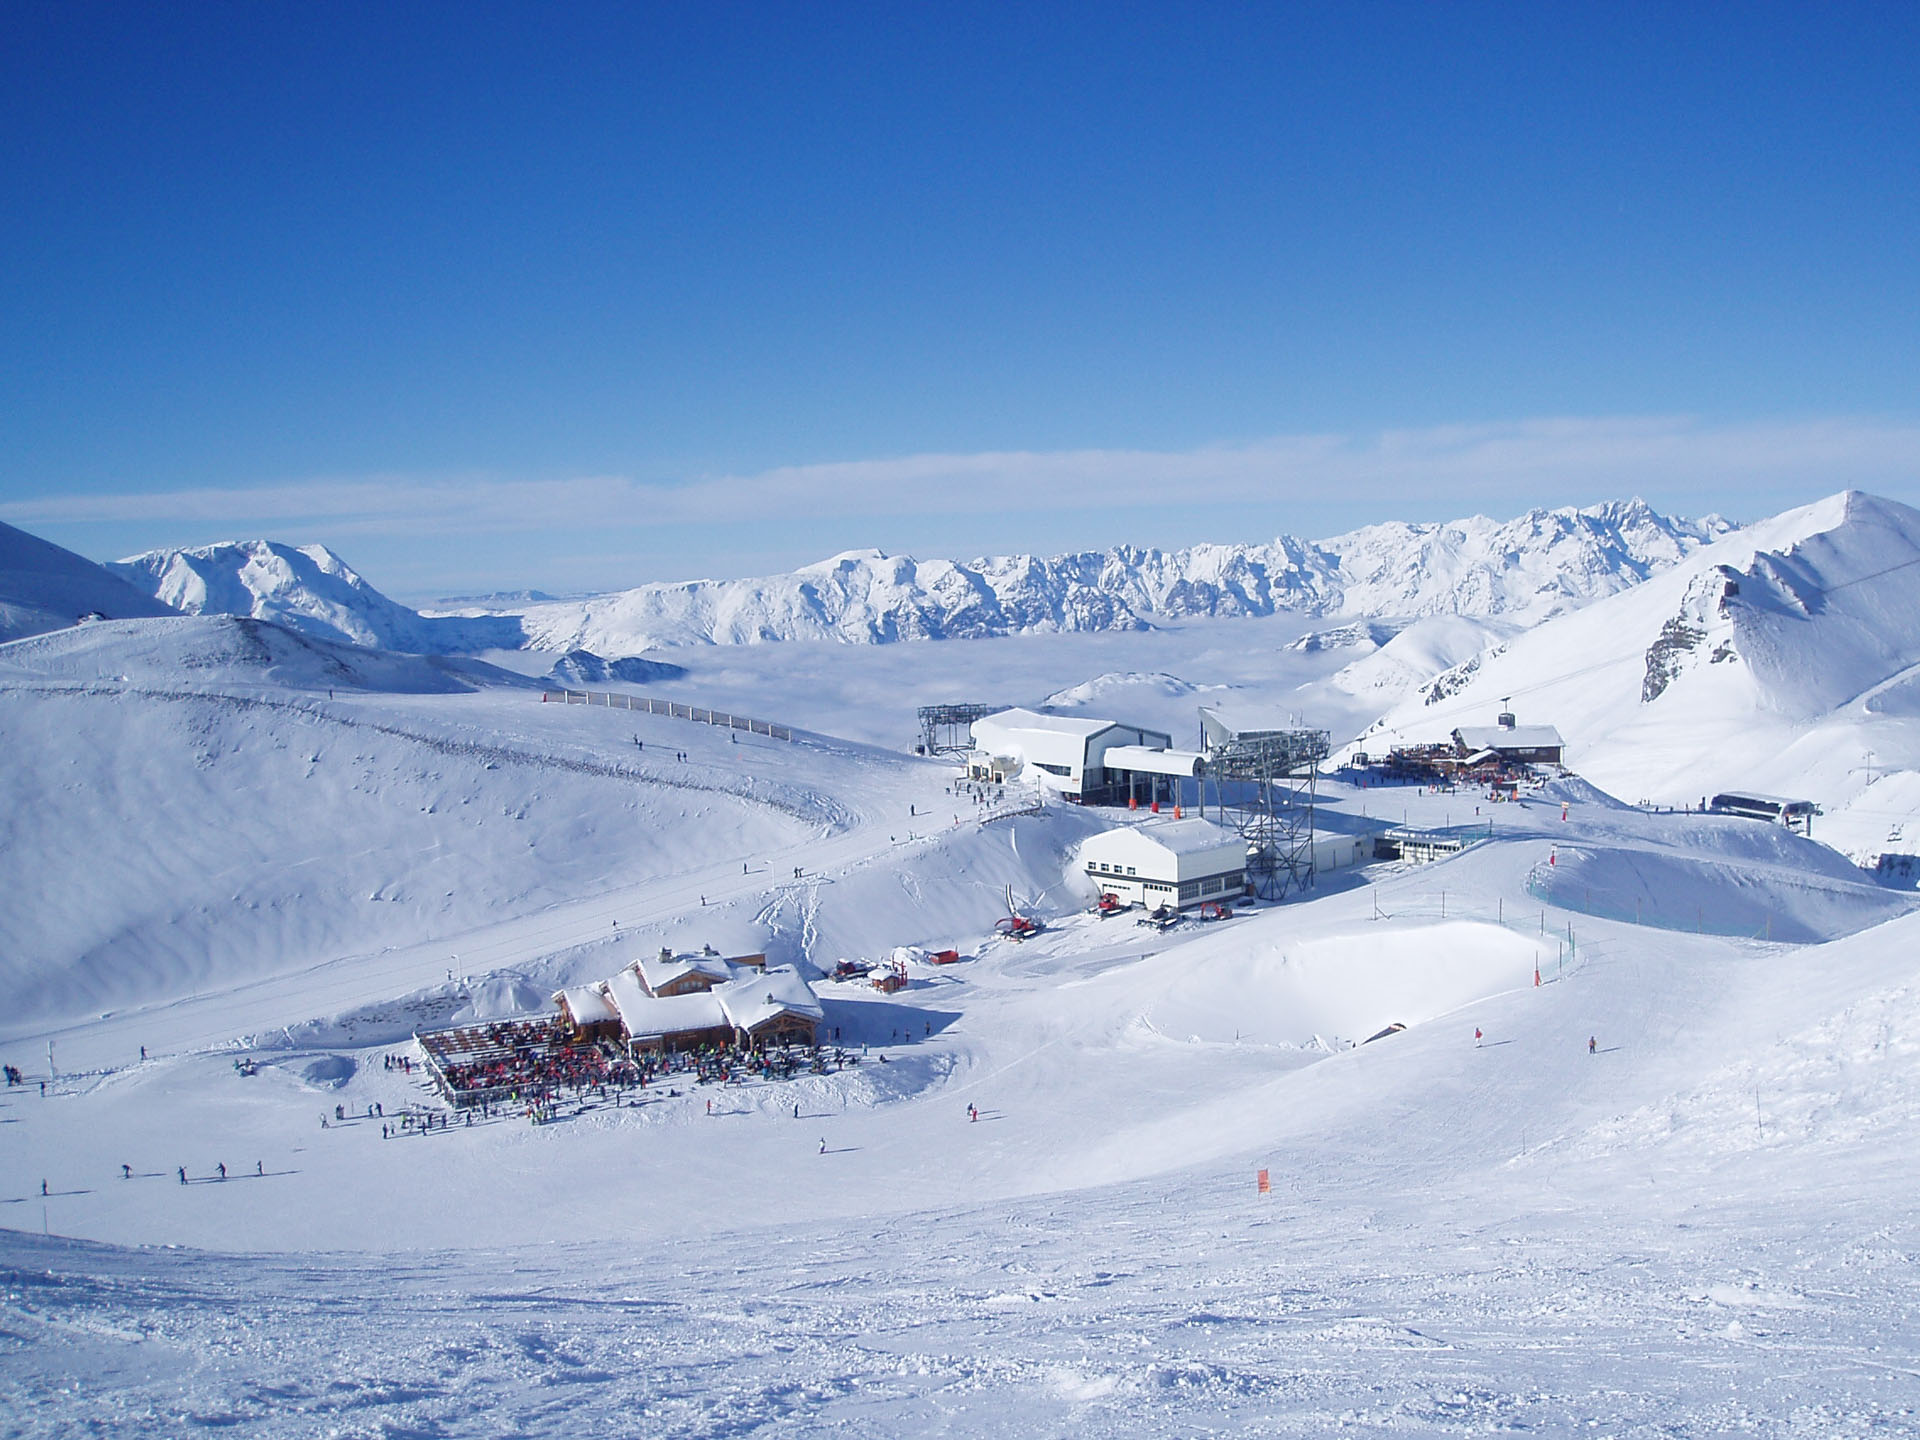 Two mountain restaurants and the top of a chair lift sit atop a mountain above a sea of clouds in Les 2 Alpes